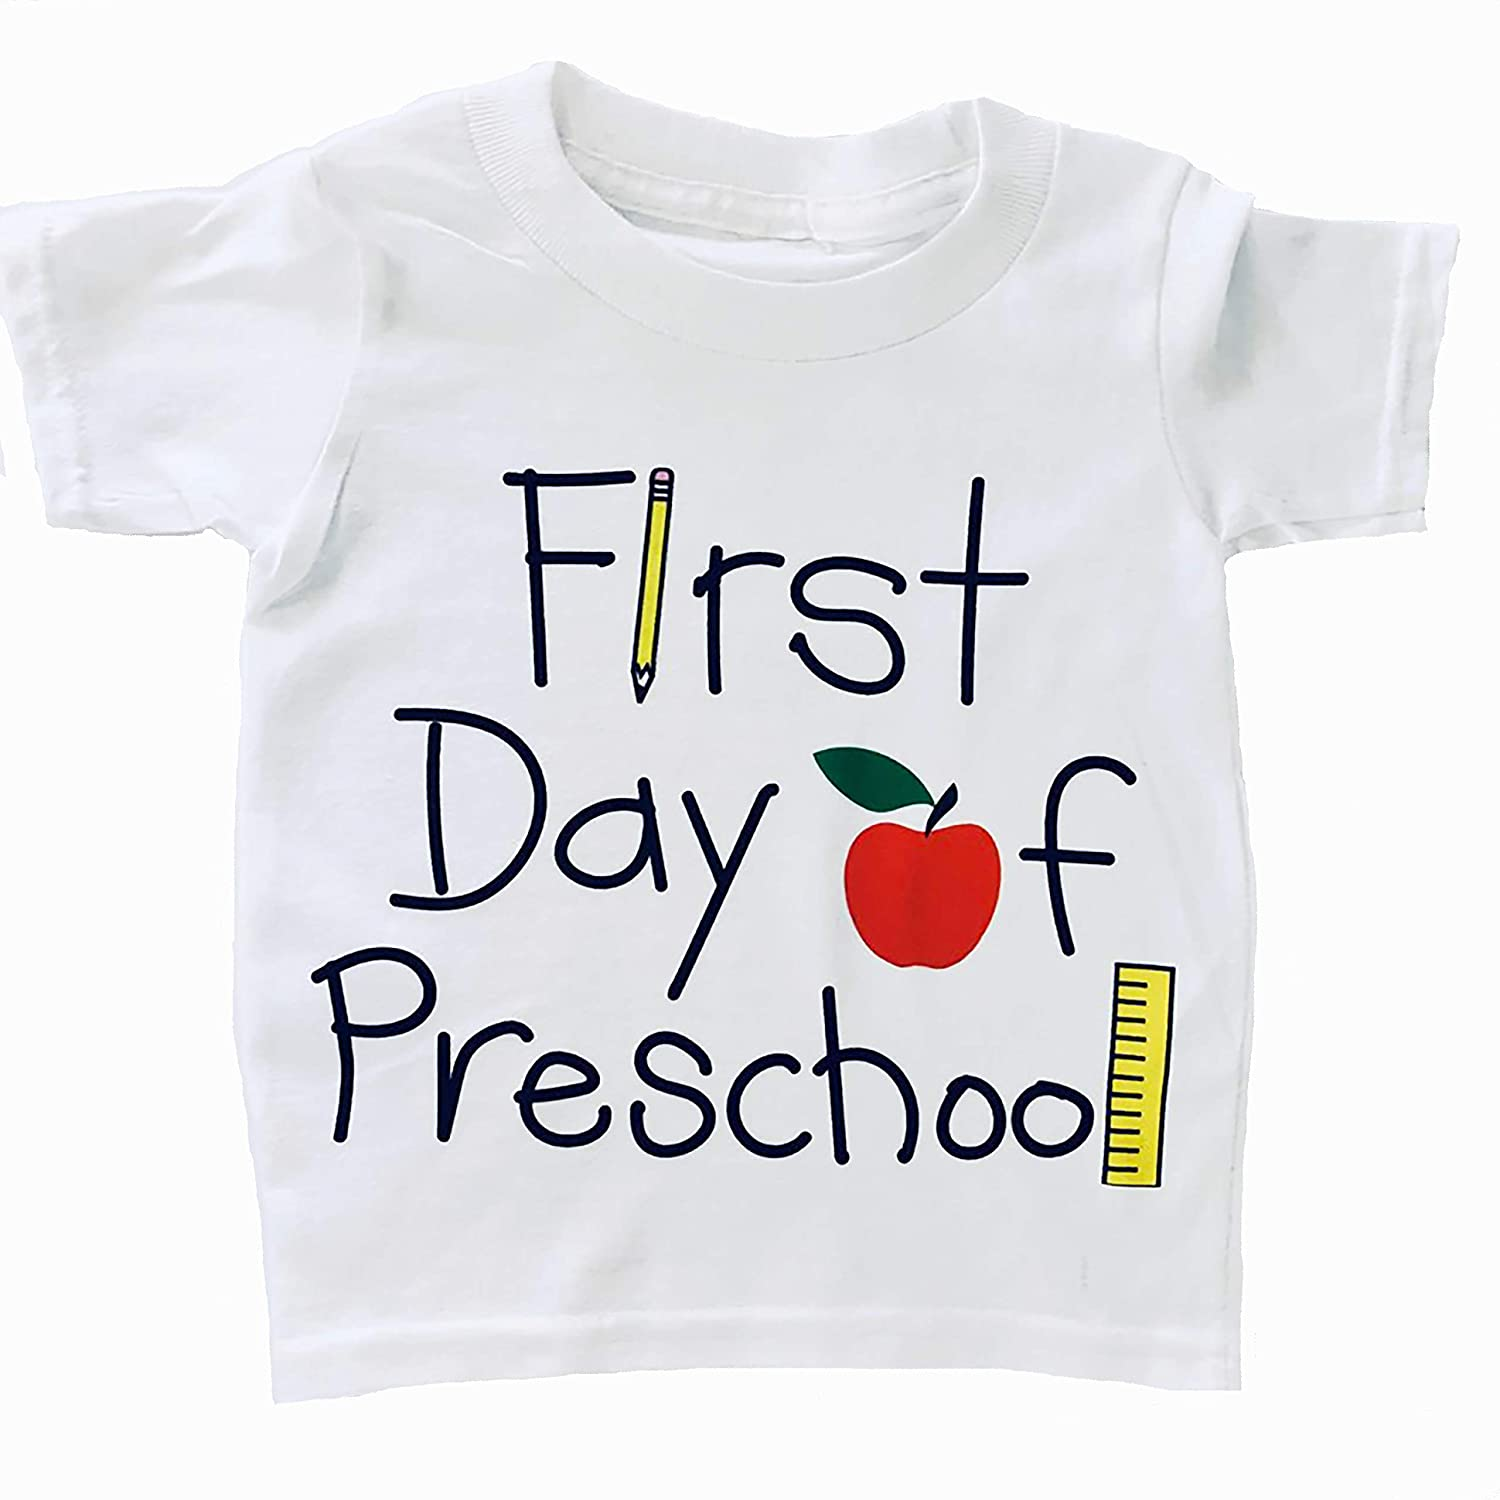 First Day of low-pricing Preschool Shirt Toddler Pre-K Tampa Mall T-shirt Children's